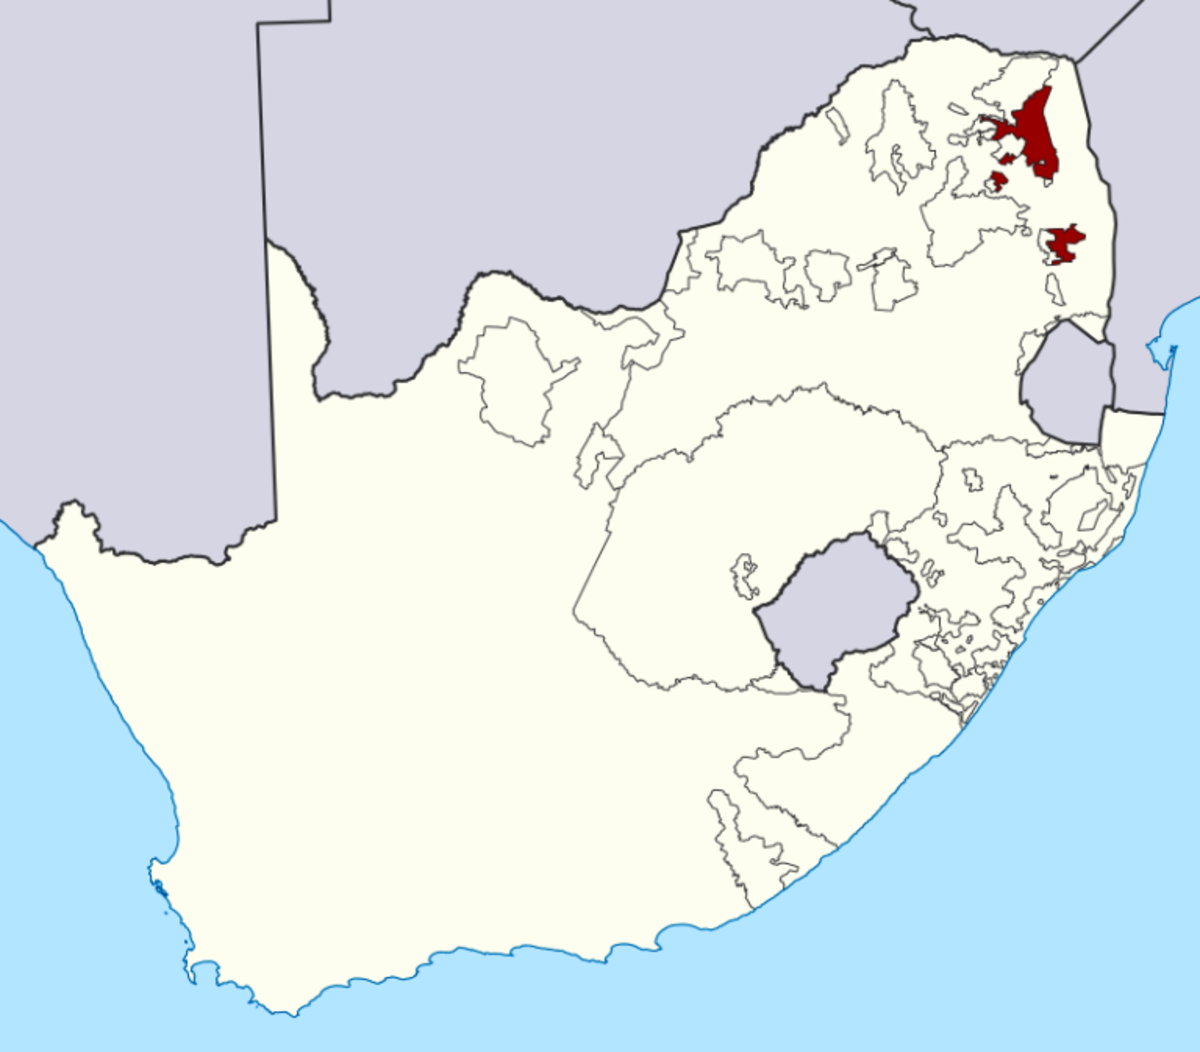 Tsonga and Shangaan territory, South Africa